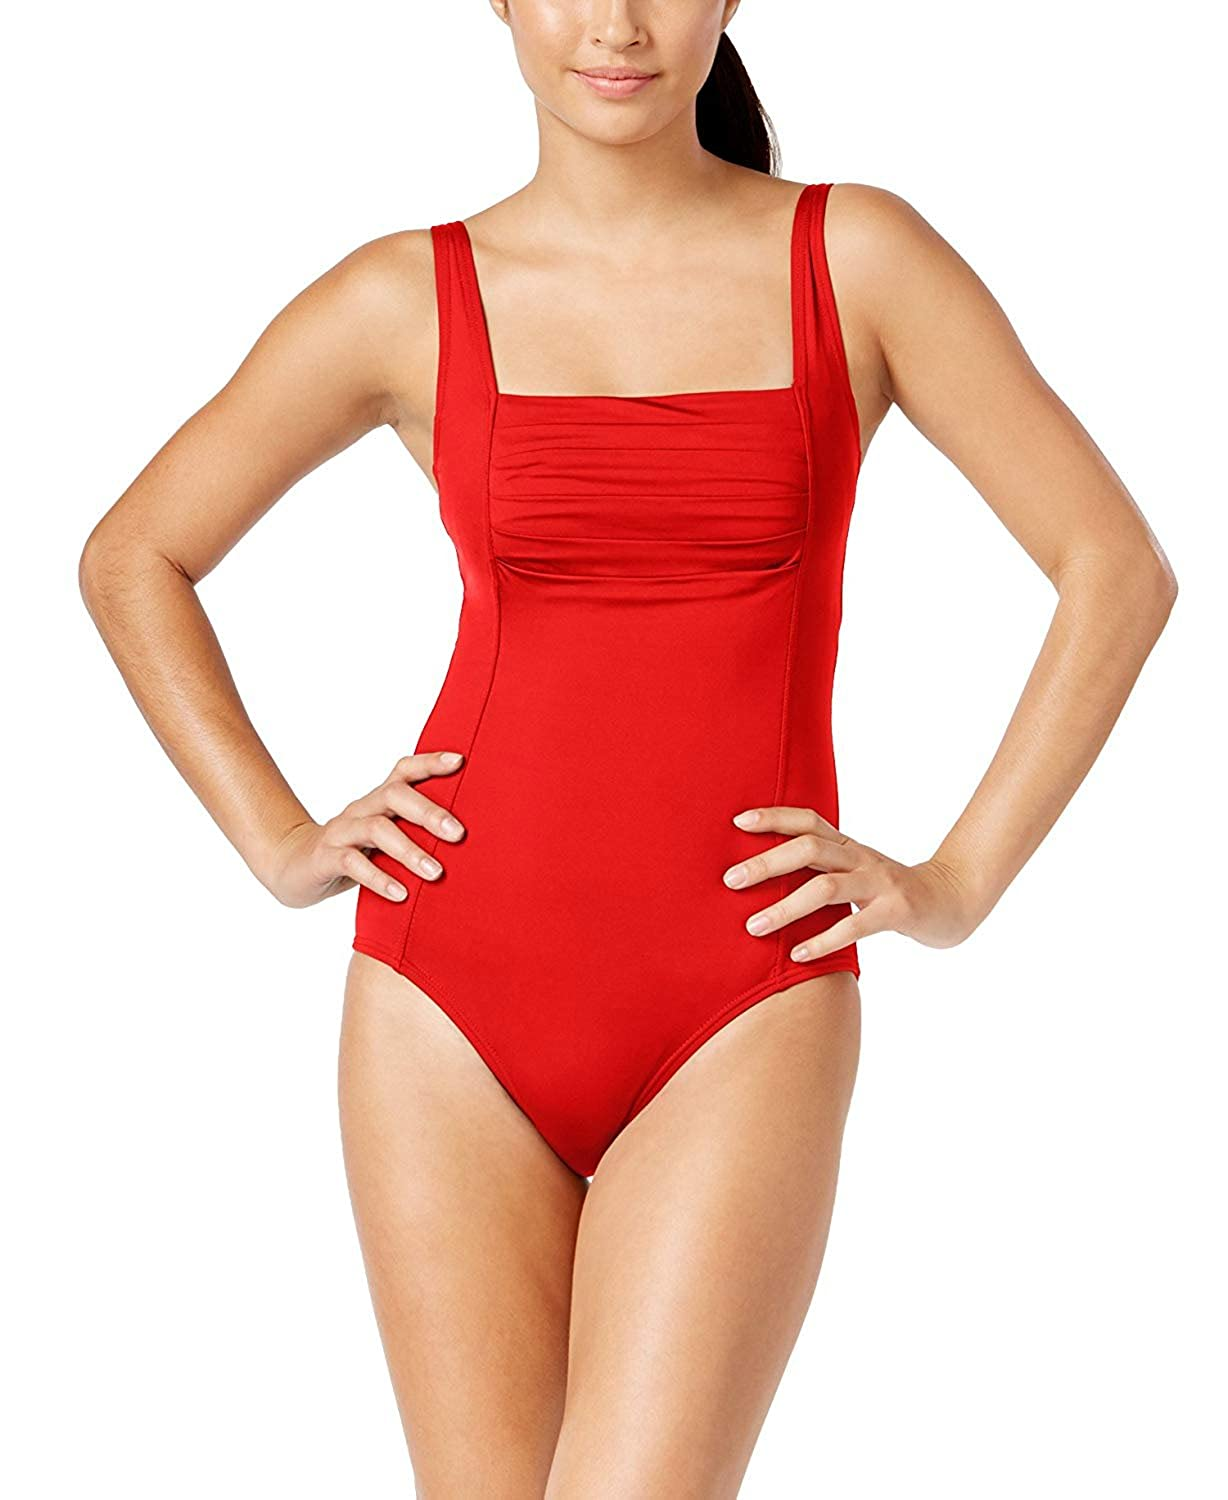 cc2461b825ec8 Calvin Klein Women's Shirred One-Piece Swimsuit at Amazon Women's Clothing  store: